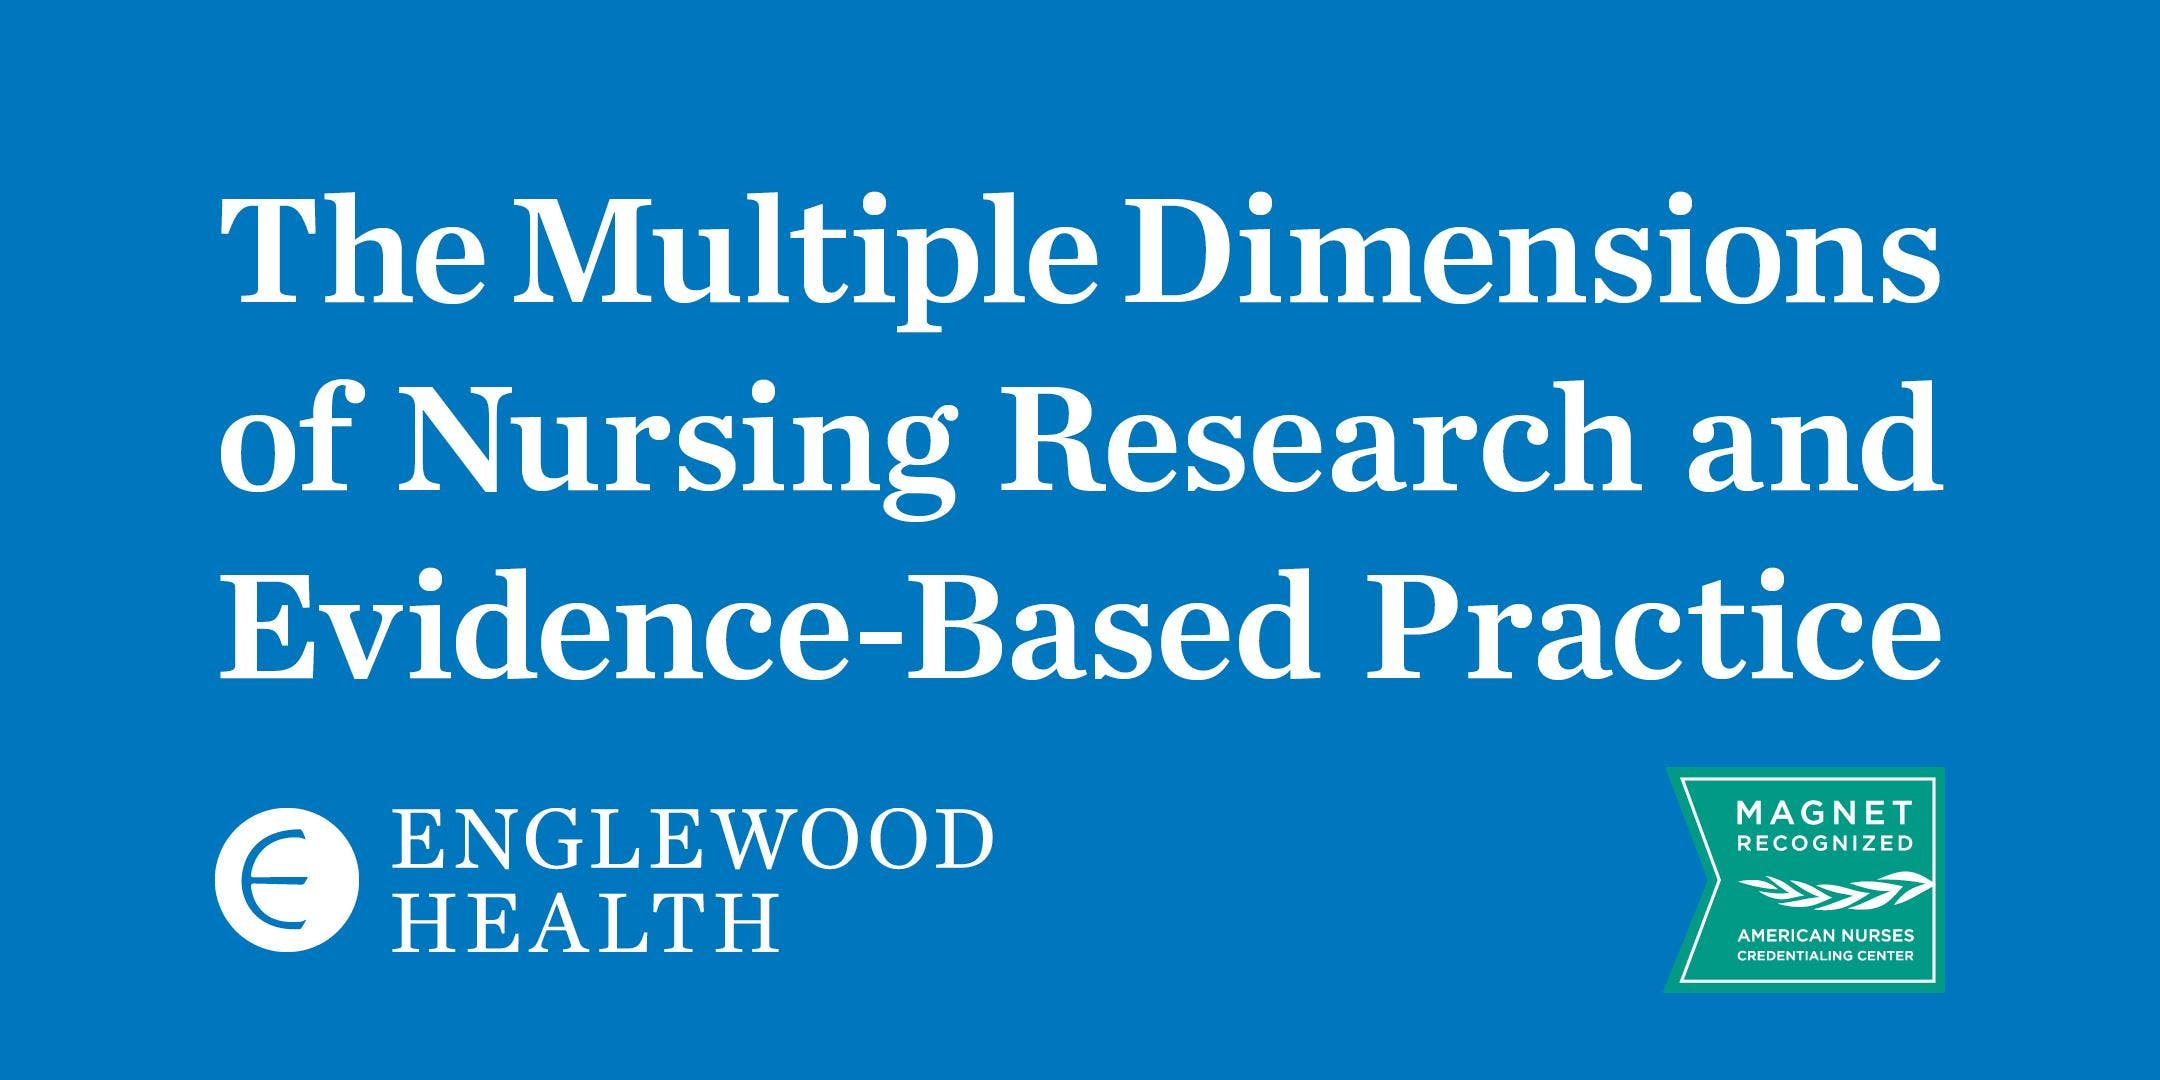 More info: The Multiple Dimensions of Nursing Research and Evidence-Based Practice